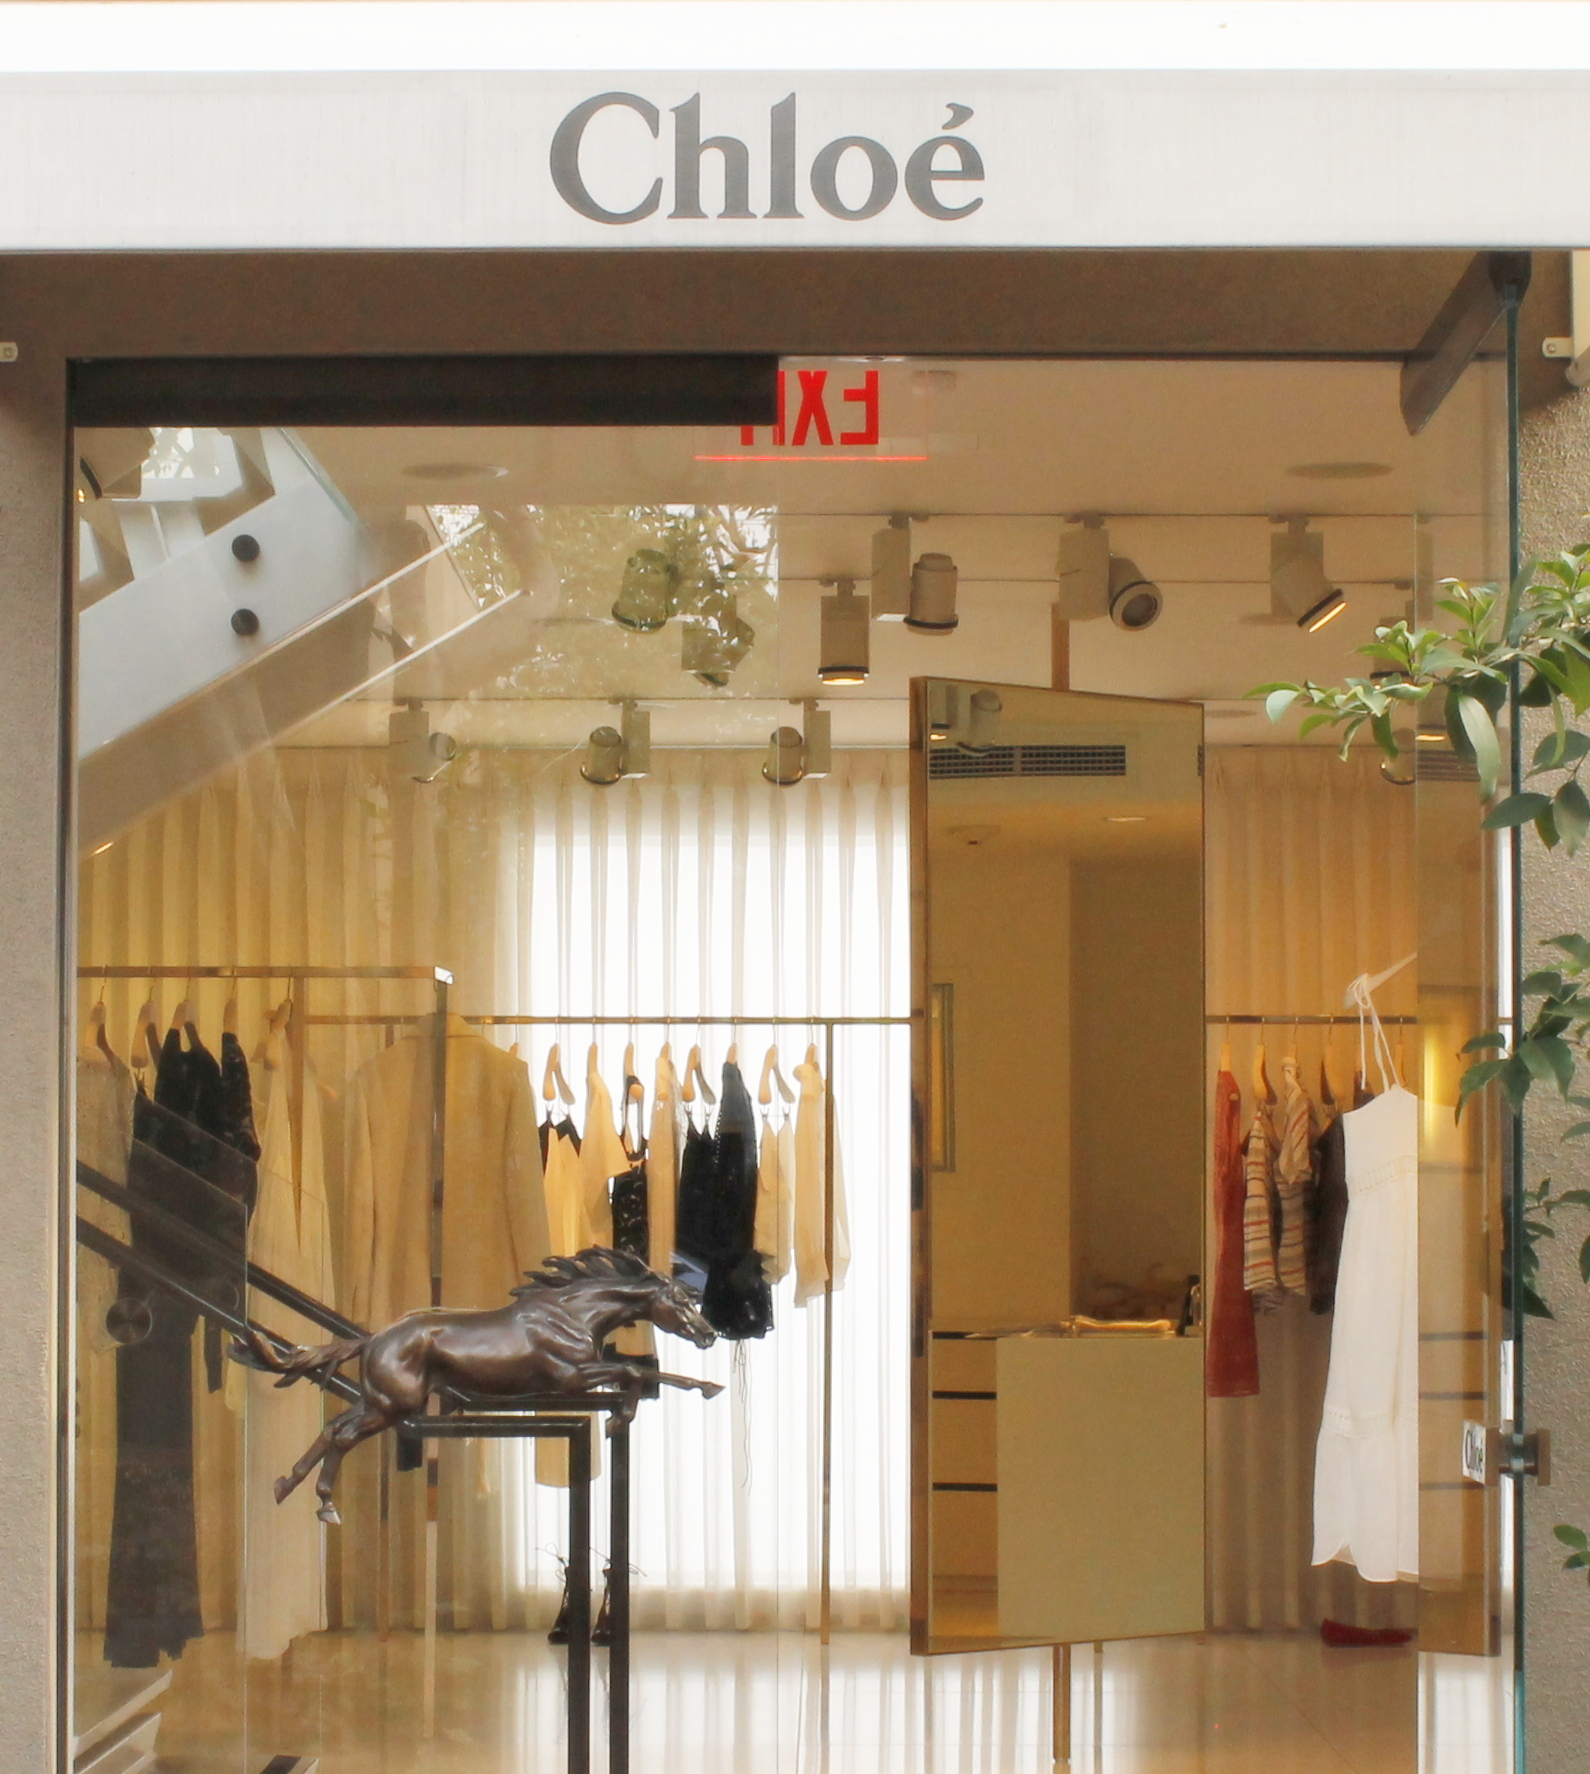 Chloe boutique on Melrose Avenue, Los Angeles, California